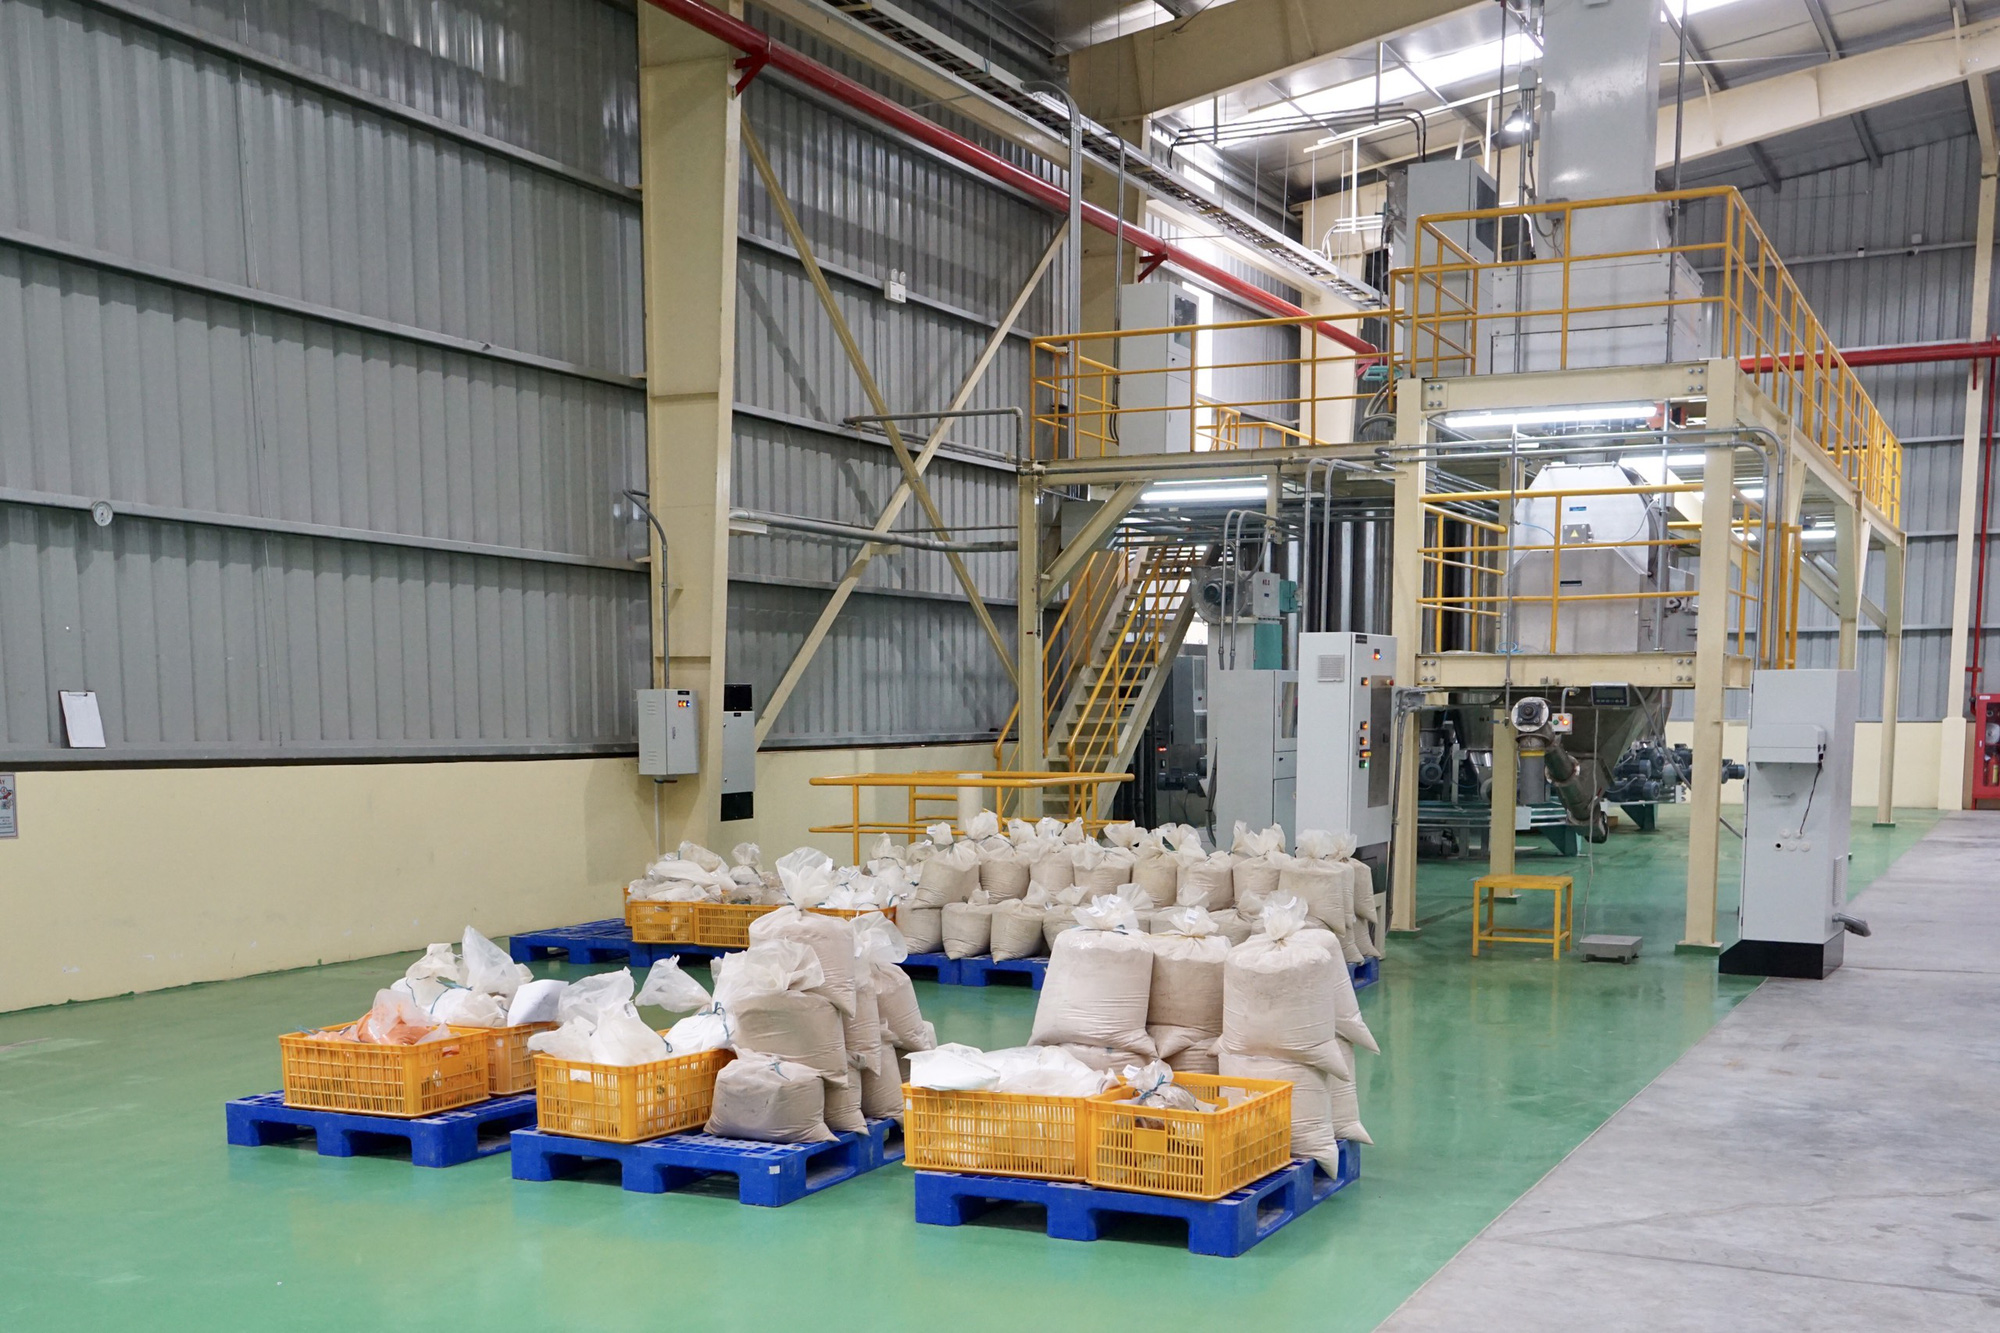 Japfa Vietnam inaugurated a 300 billion VND animal feed factory in Binh Dinh - Photo 4.